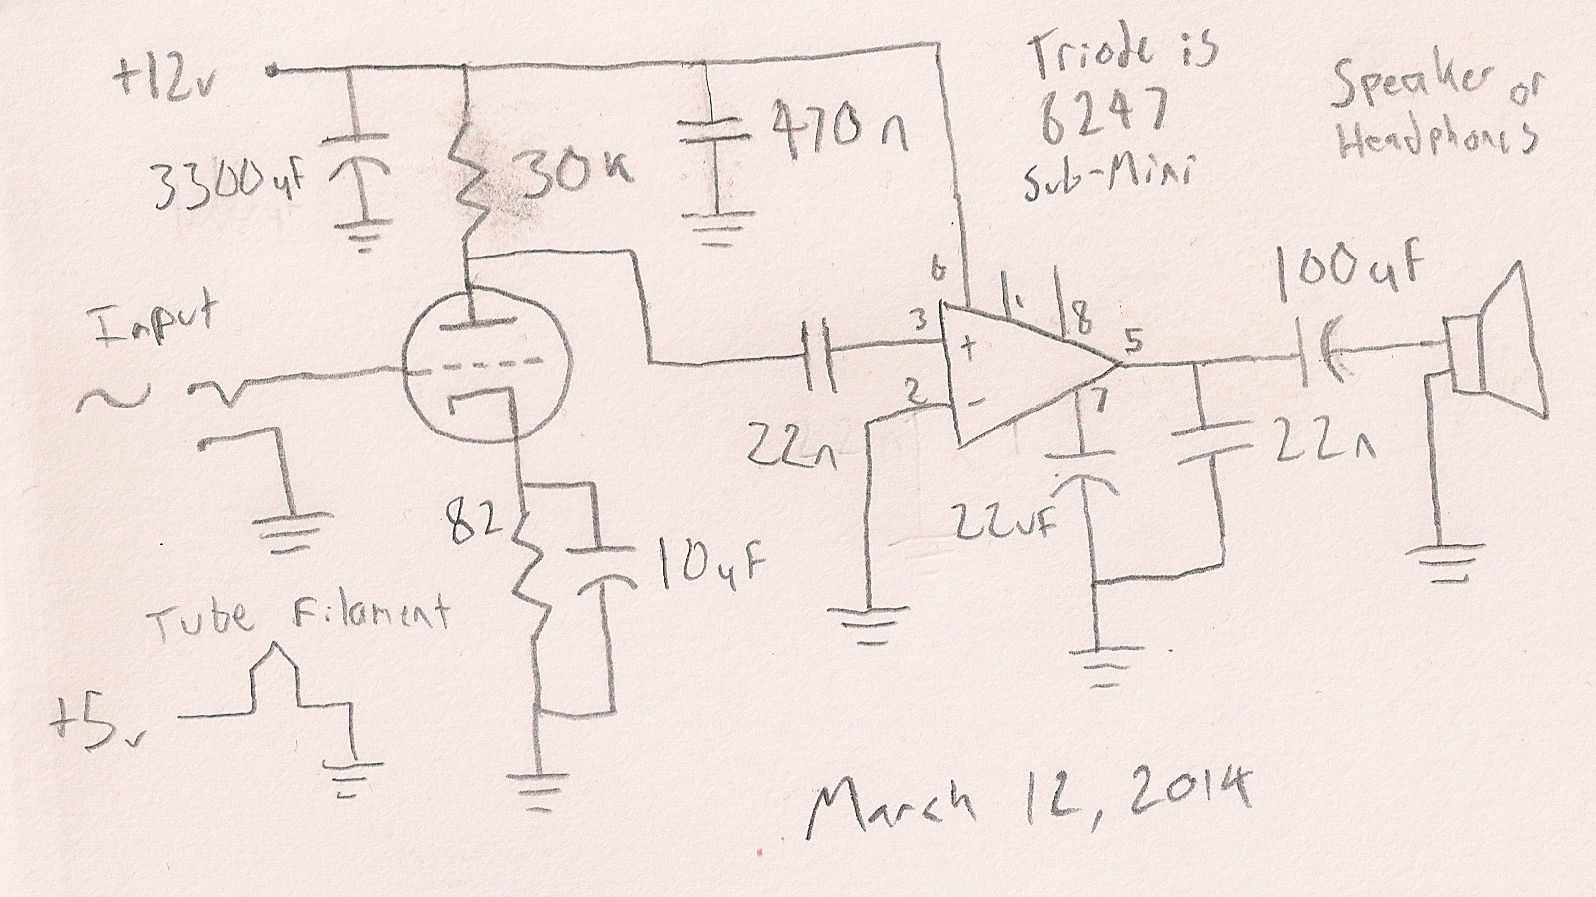 Low voltage 6247 tube and LM386 | Details | Hackaday io